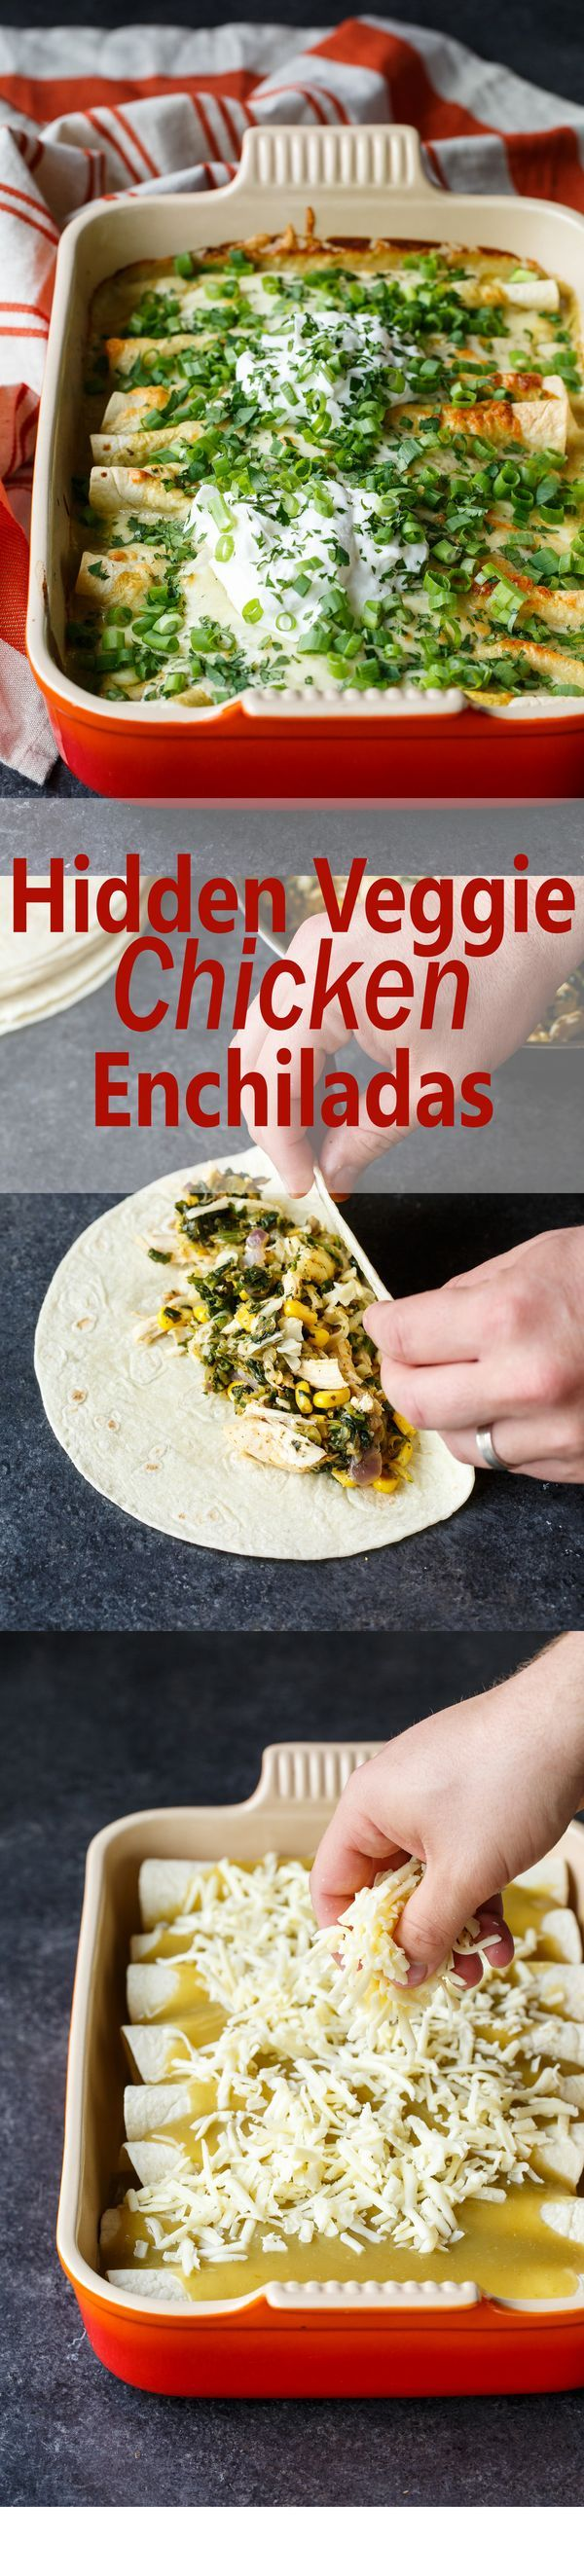 Hidden Veggie Chicken Enchiladas Recipe - filled with shredded zucchini, spinach, and corn… all under a layer of green enchilada sauce + LOTS of cheese!  Your kids will never know they are eating healthy vegetables!  It's a meal they'll love and you'll feel good about serving!